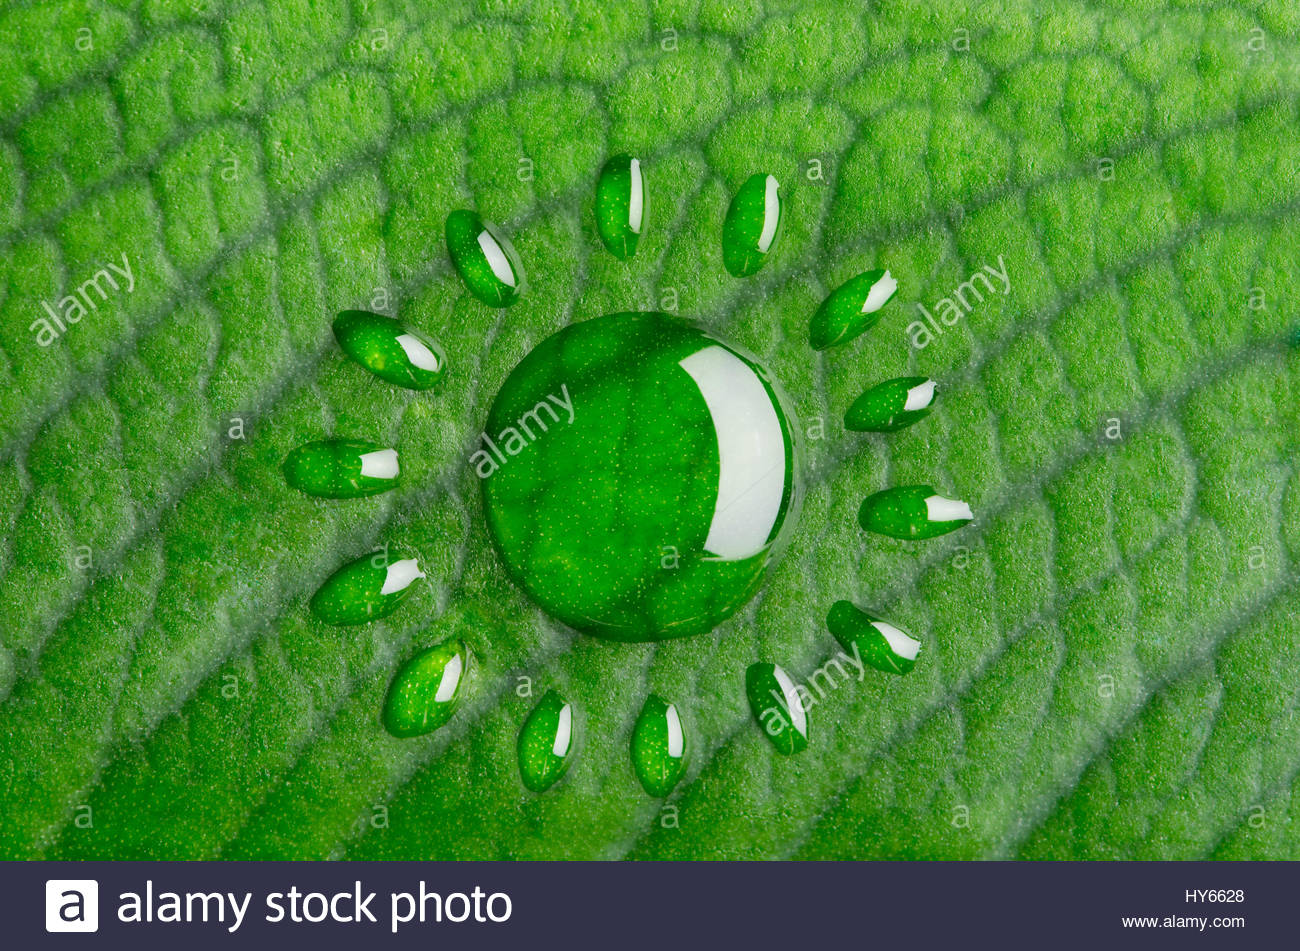 Green energy concept. Sun made of water droplets - Stock Image